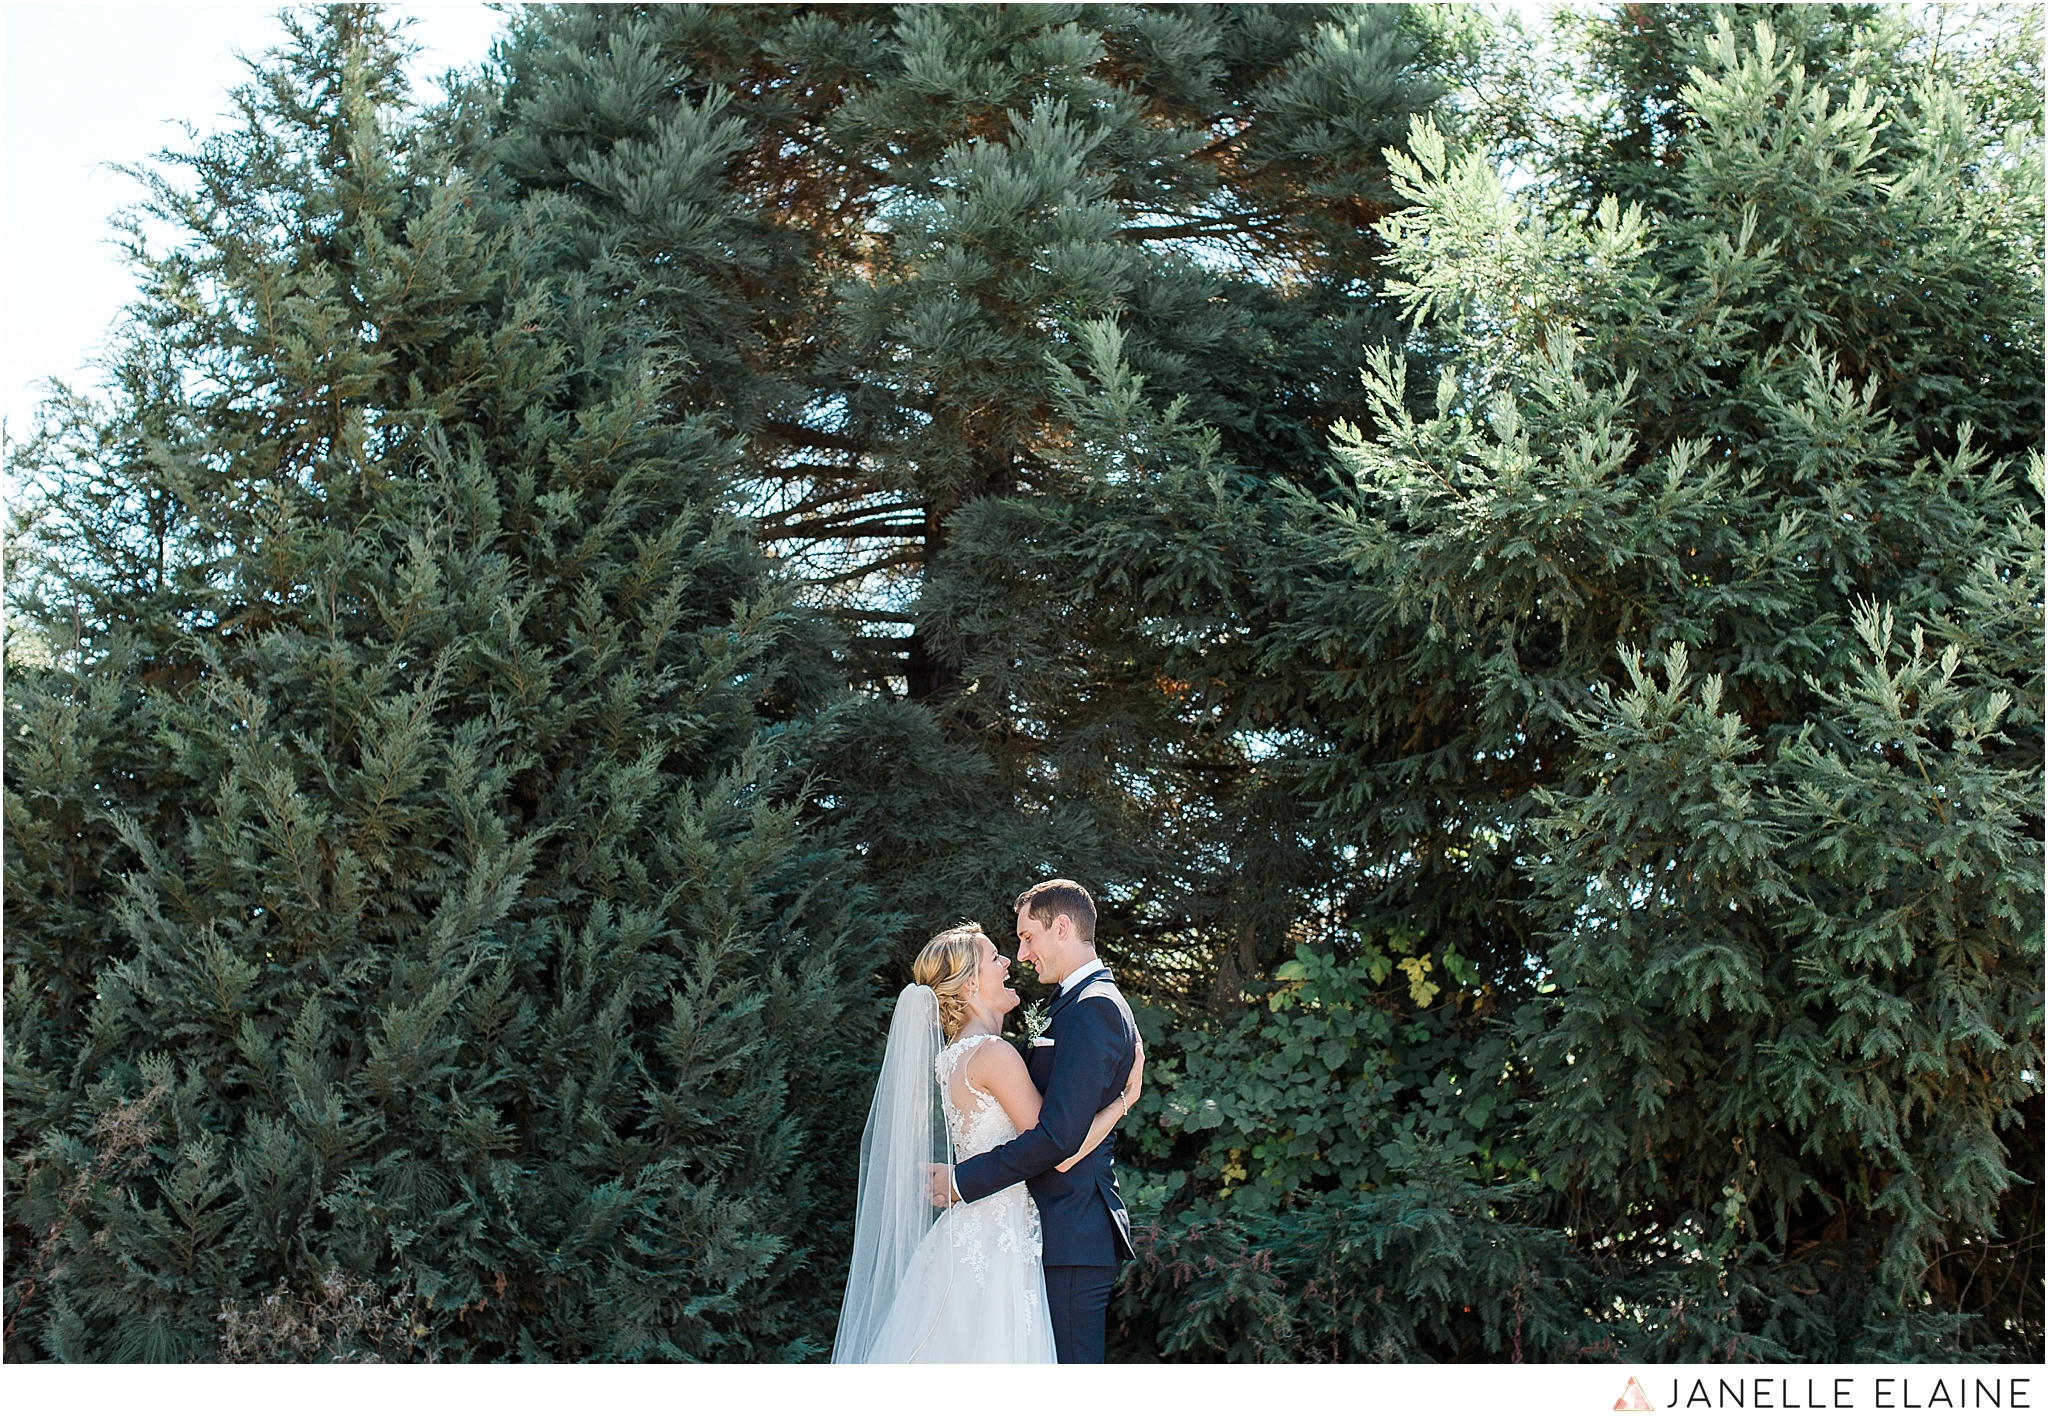 janelle elaine photography-carleton farms-washington-wedding-lake stevens-91.jpg